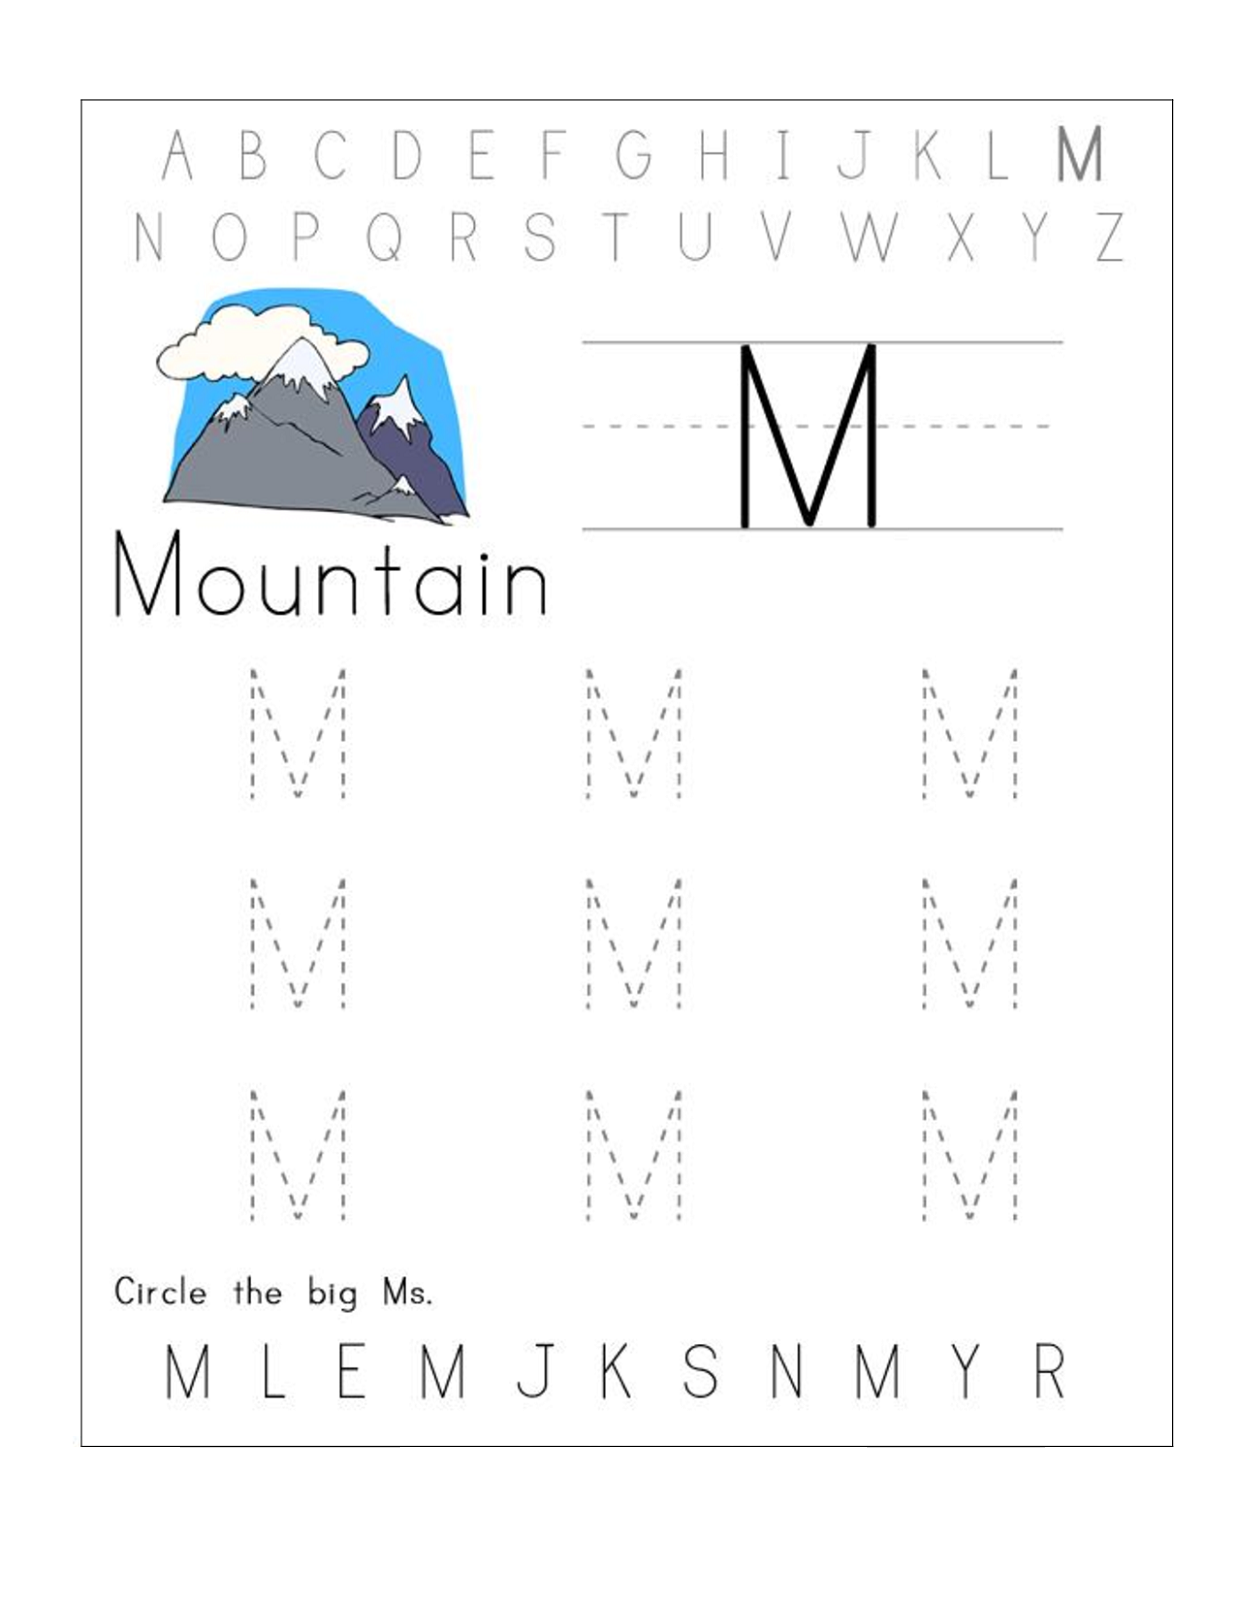 Printable Abc Worksheets Free In